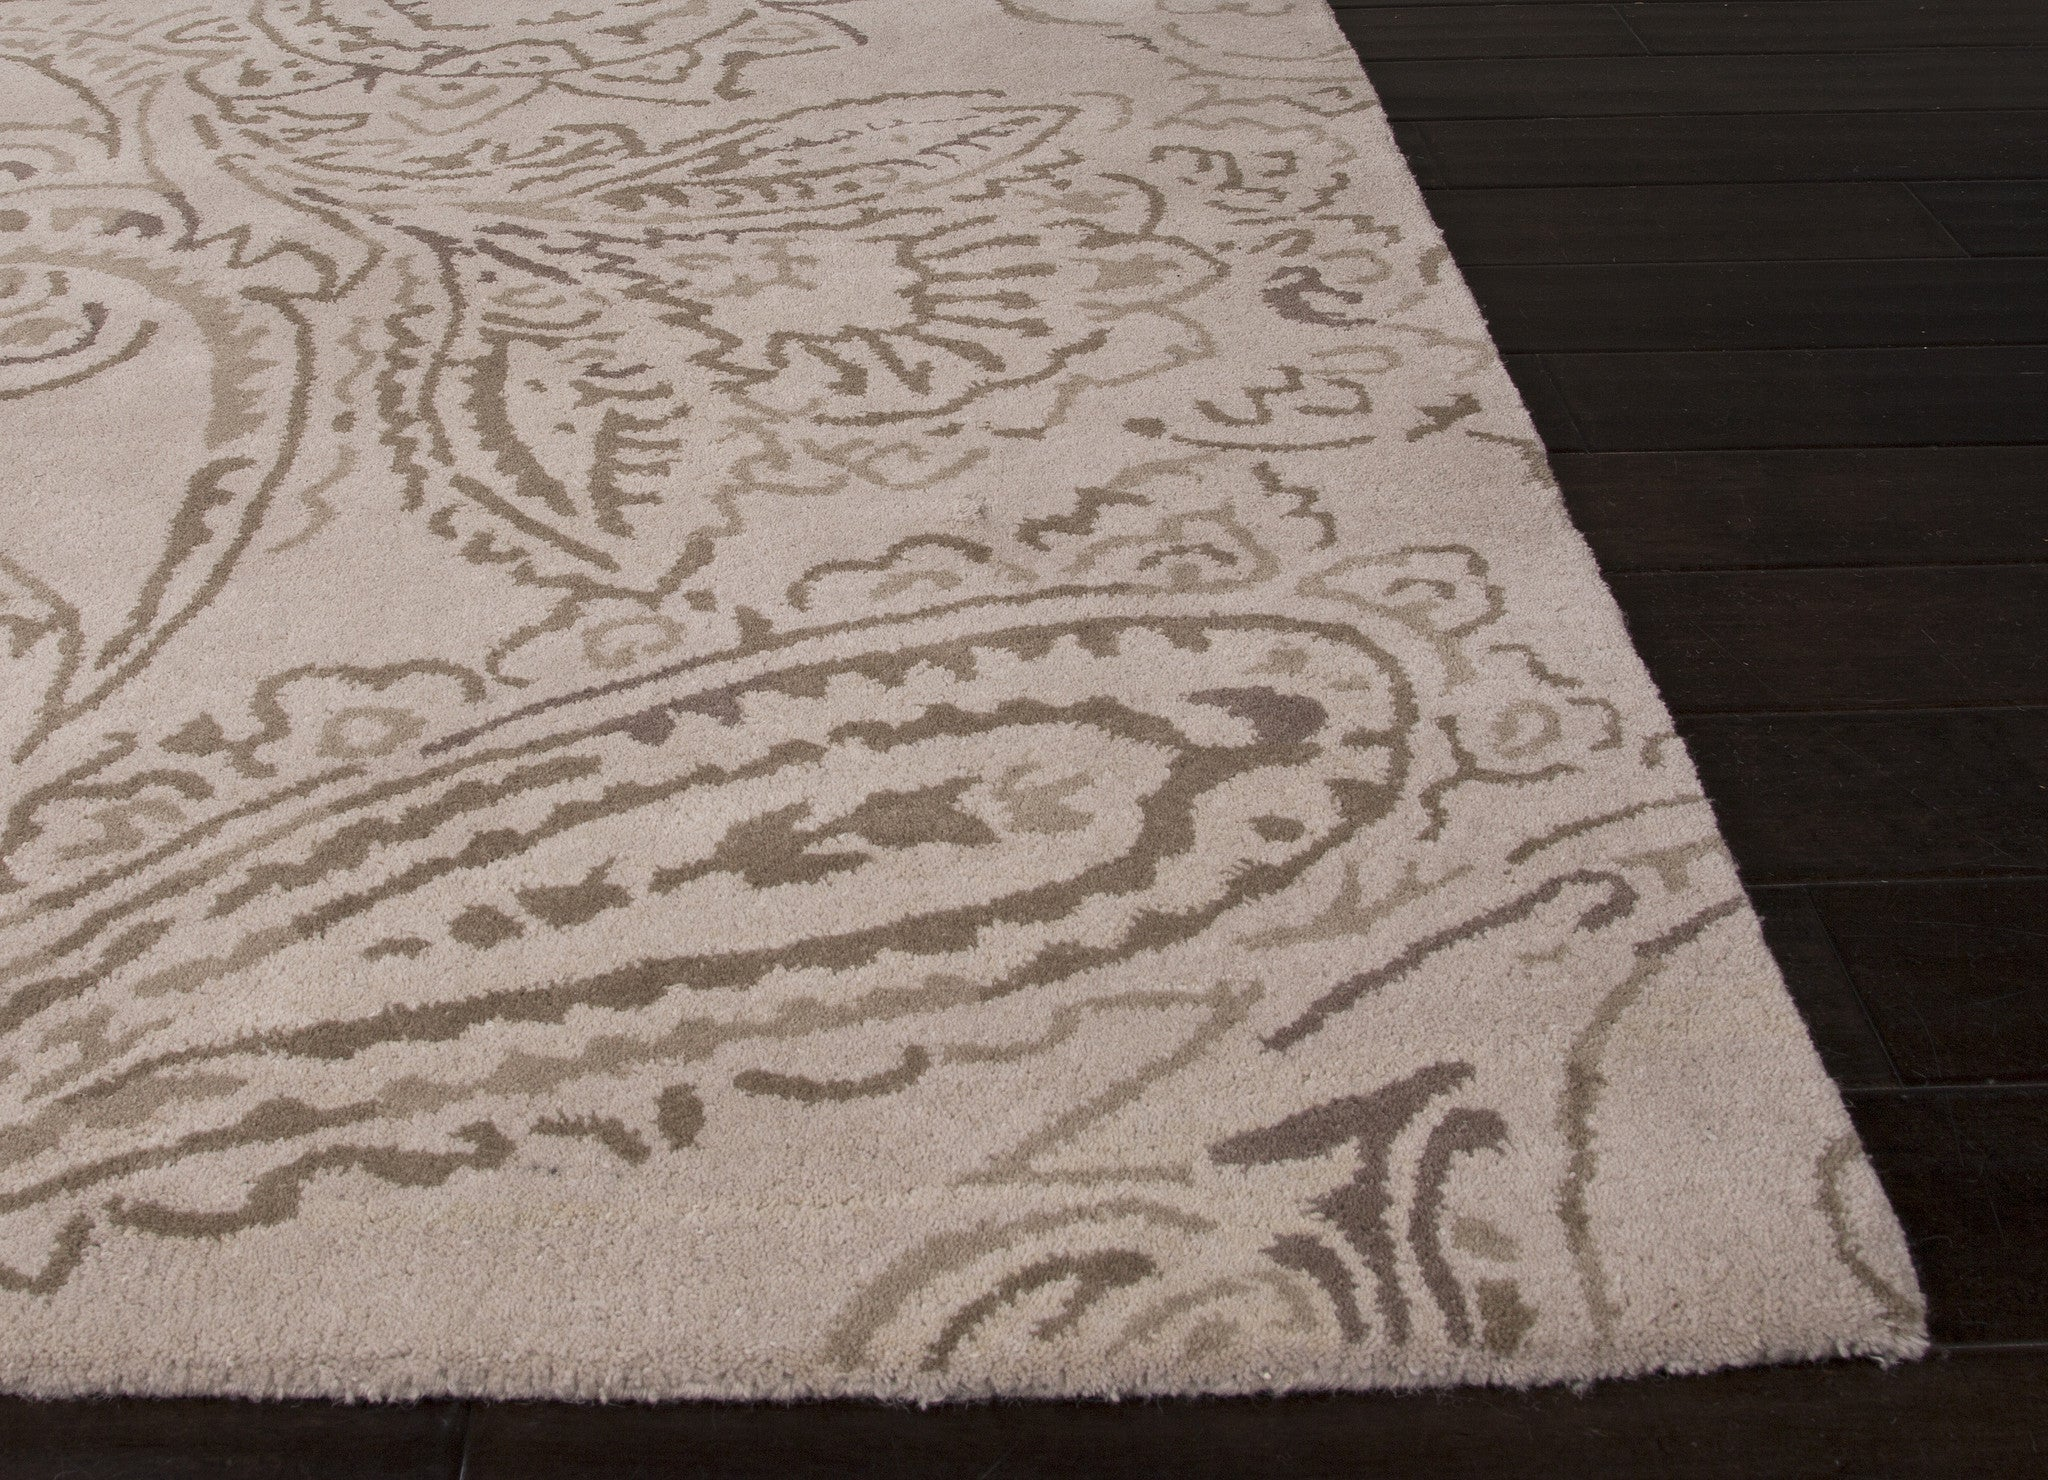 Jaipur Rugs Transitional Floral Pattern Ivory Gray Wool